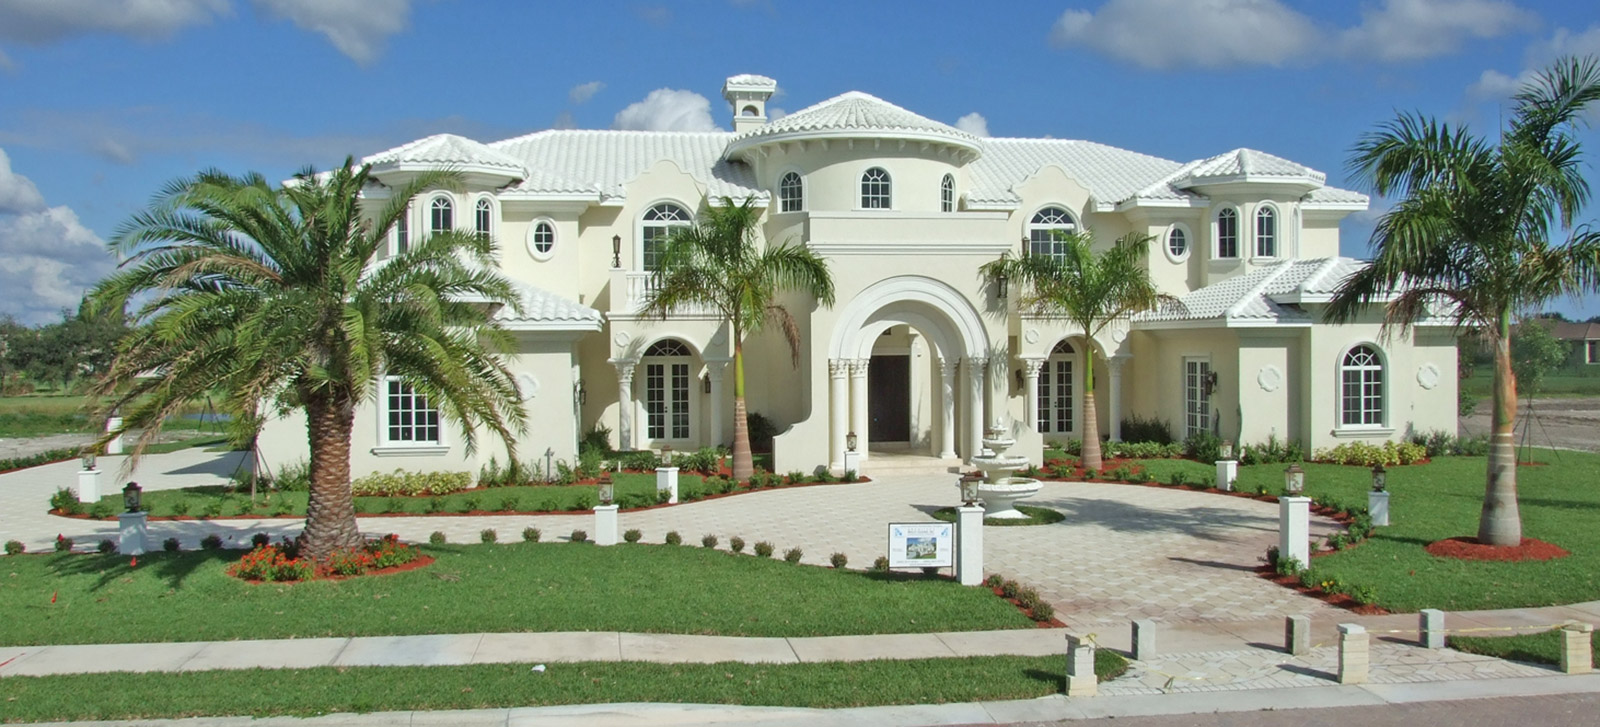 fort lauderdale architect photo